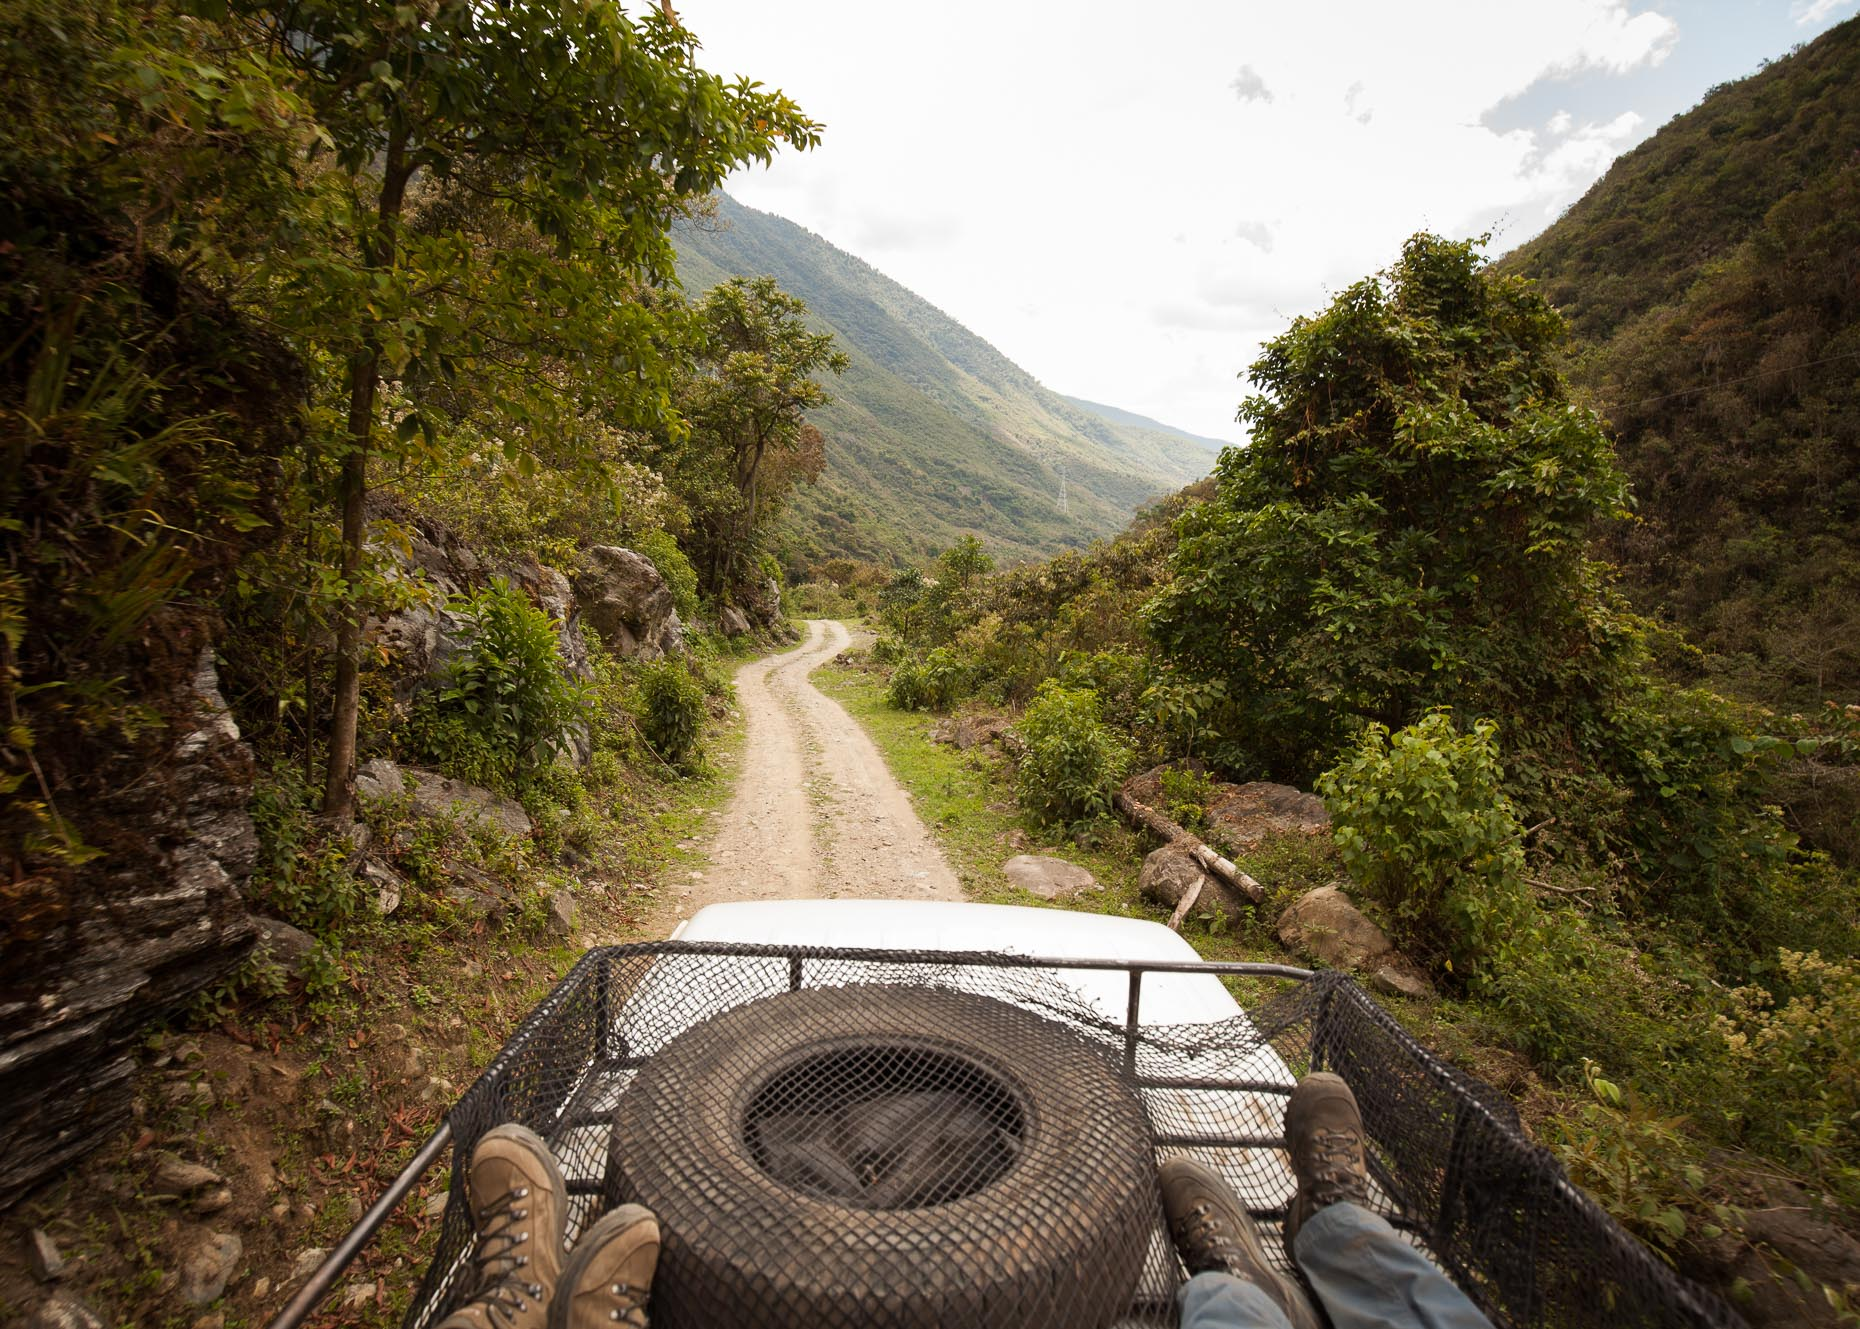 Jeep Ride, Salkantay Trek, Peru